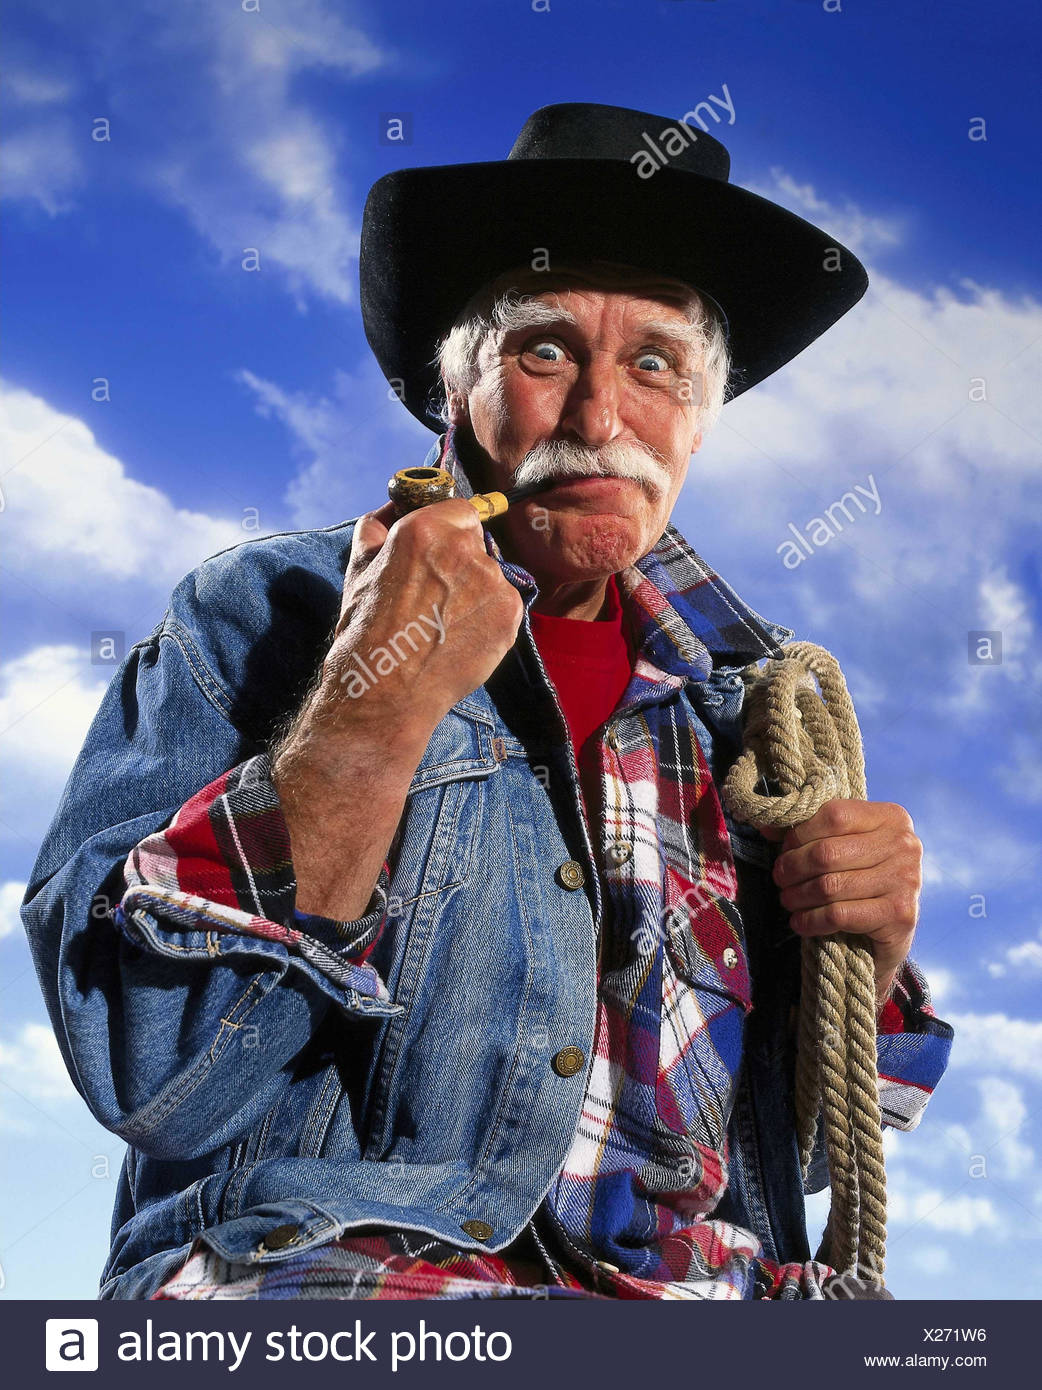 Senior, 'cowboy', whistle, lasso, facial play, decided, energetically, half portrait, cloudy sky Senior, outside, studio, man, old, denim jacket, shirt, checked, stetson, moustache, moustache, beard, hairs, white, view, seriously, determination, energy, p - Stock Image